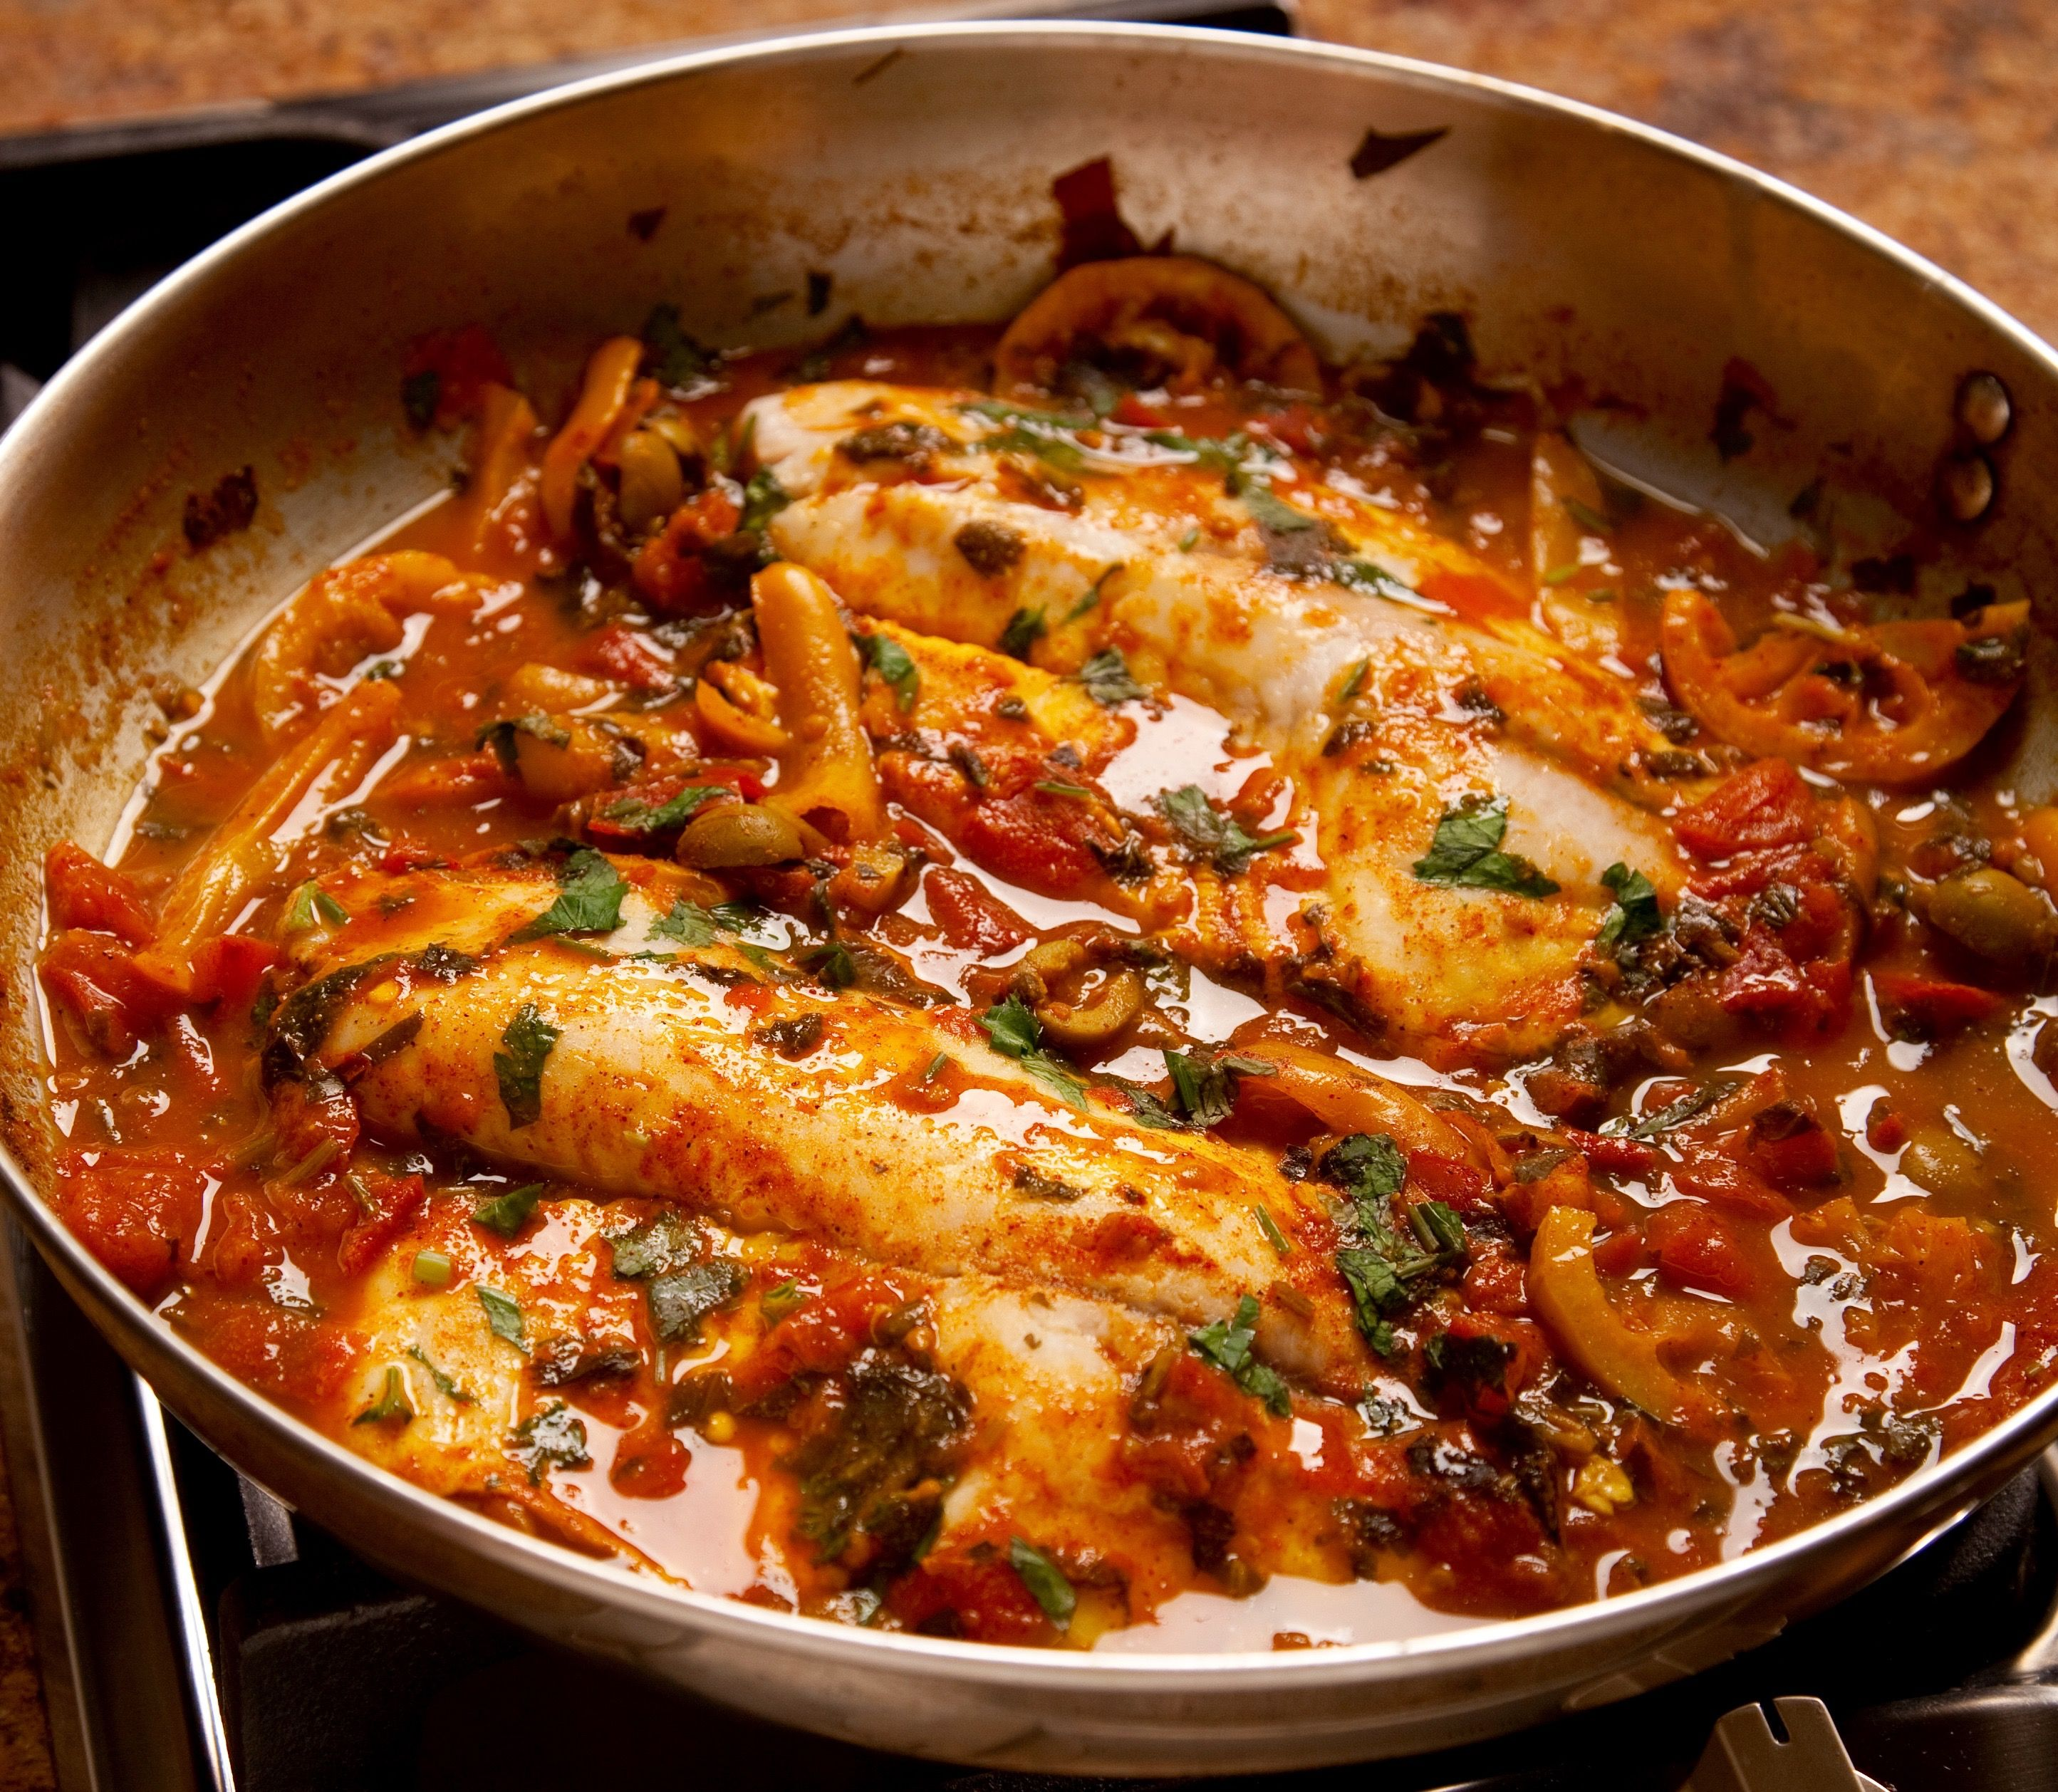 My Chraimi is excerpted from my latest cookbook, The Whole Foods Kosher Kitchen. Israelis affectionately call it chraimi, insisting that's what Moroccans ca